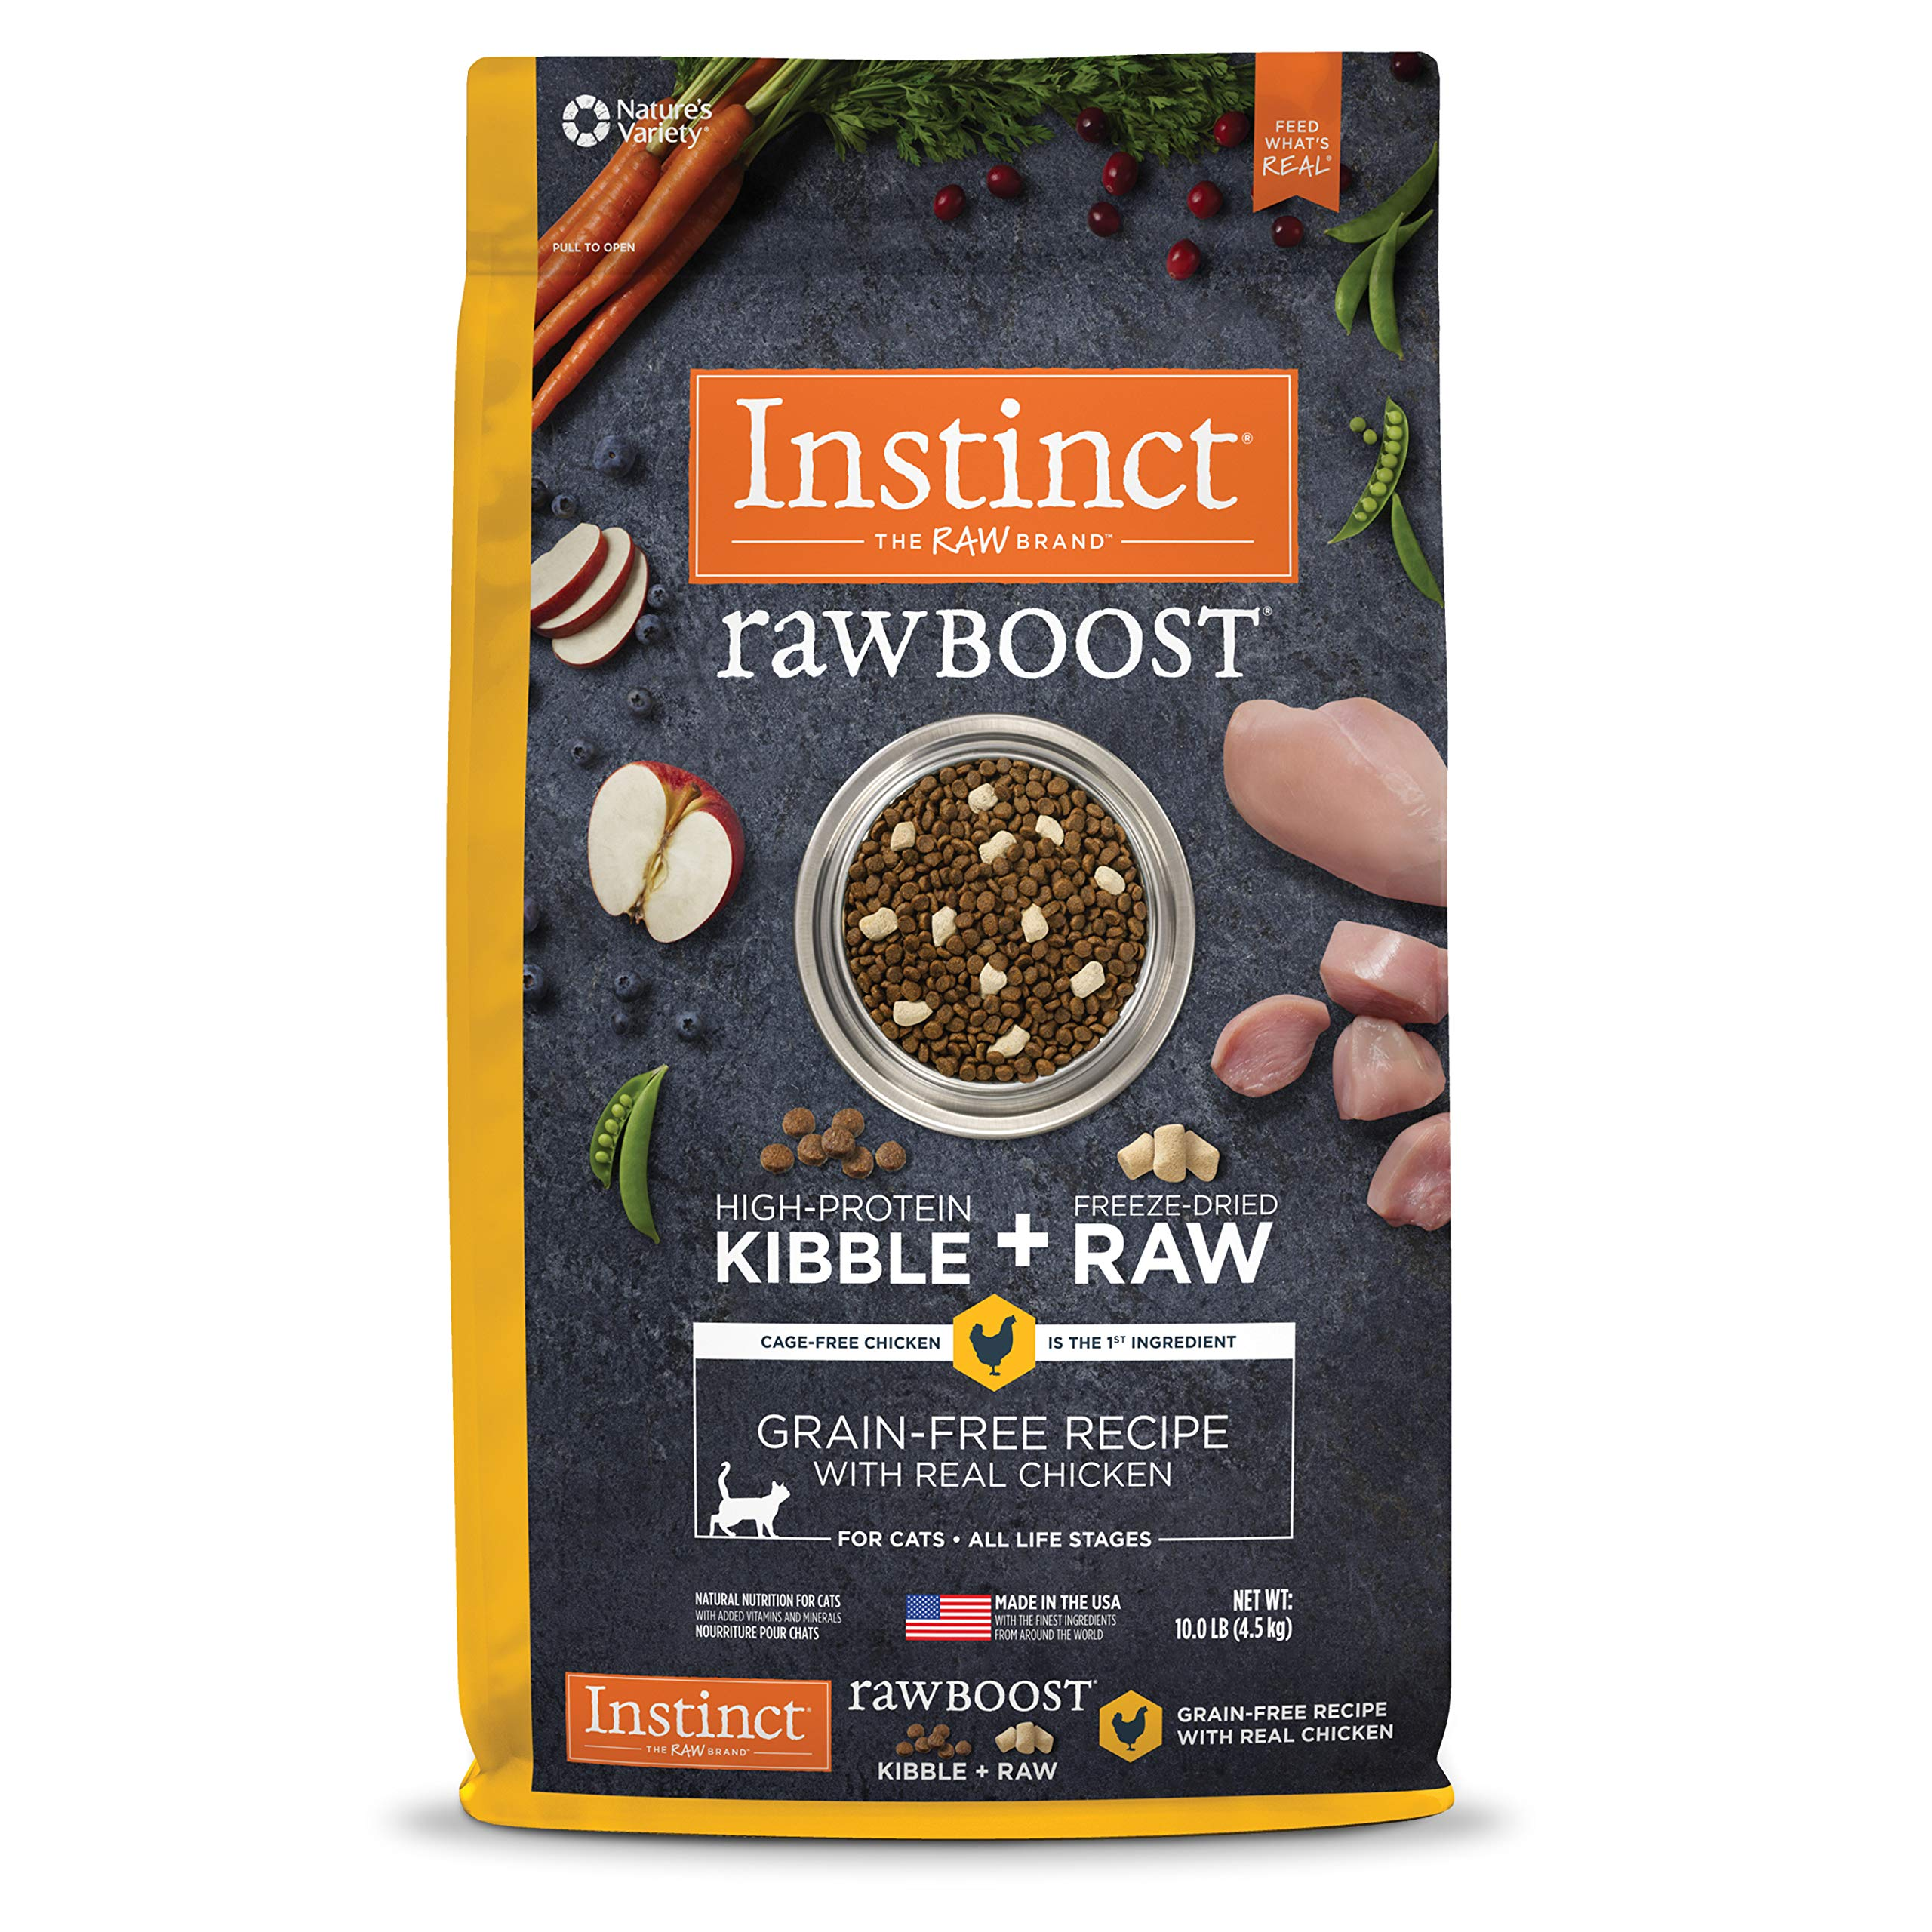 Instinct Raw Boost Grain Free Recipe with Real Chicken Natural Dry Cat Food by Nature's Variety, 10 lb. Bag by Instinct